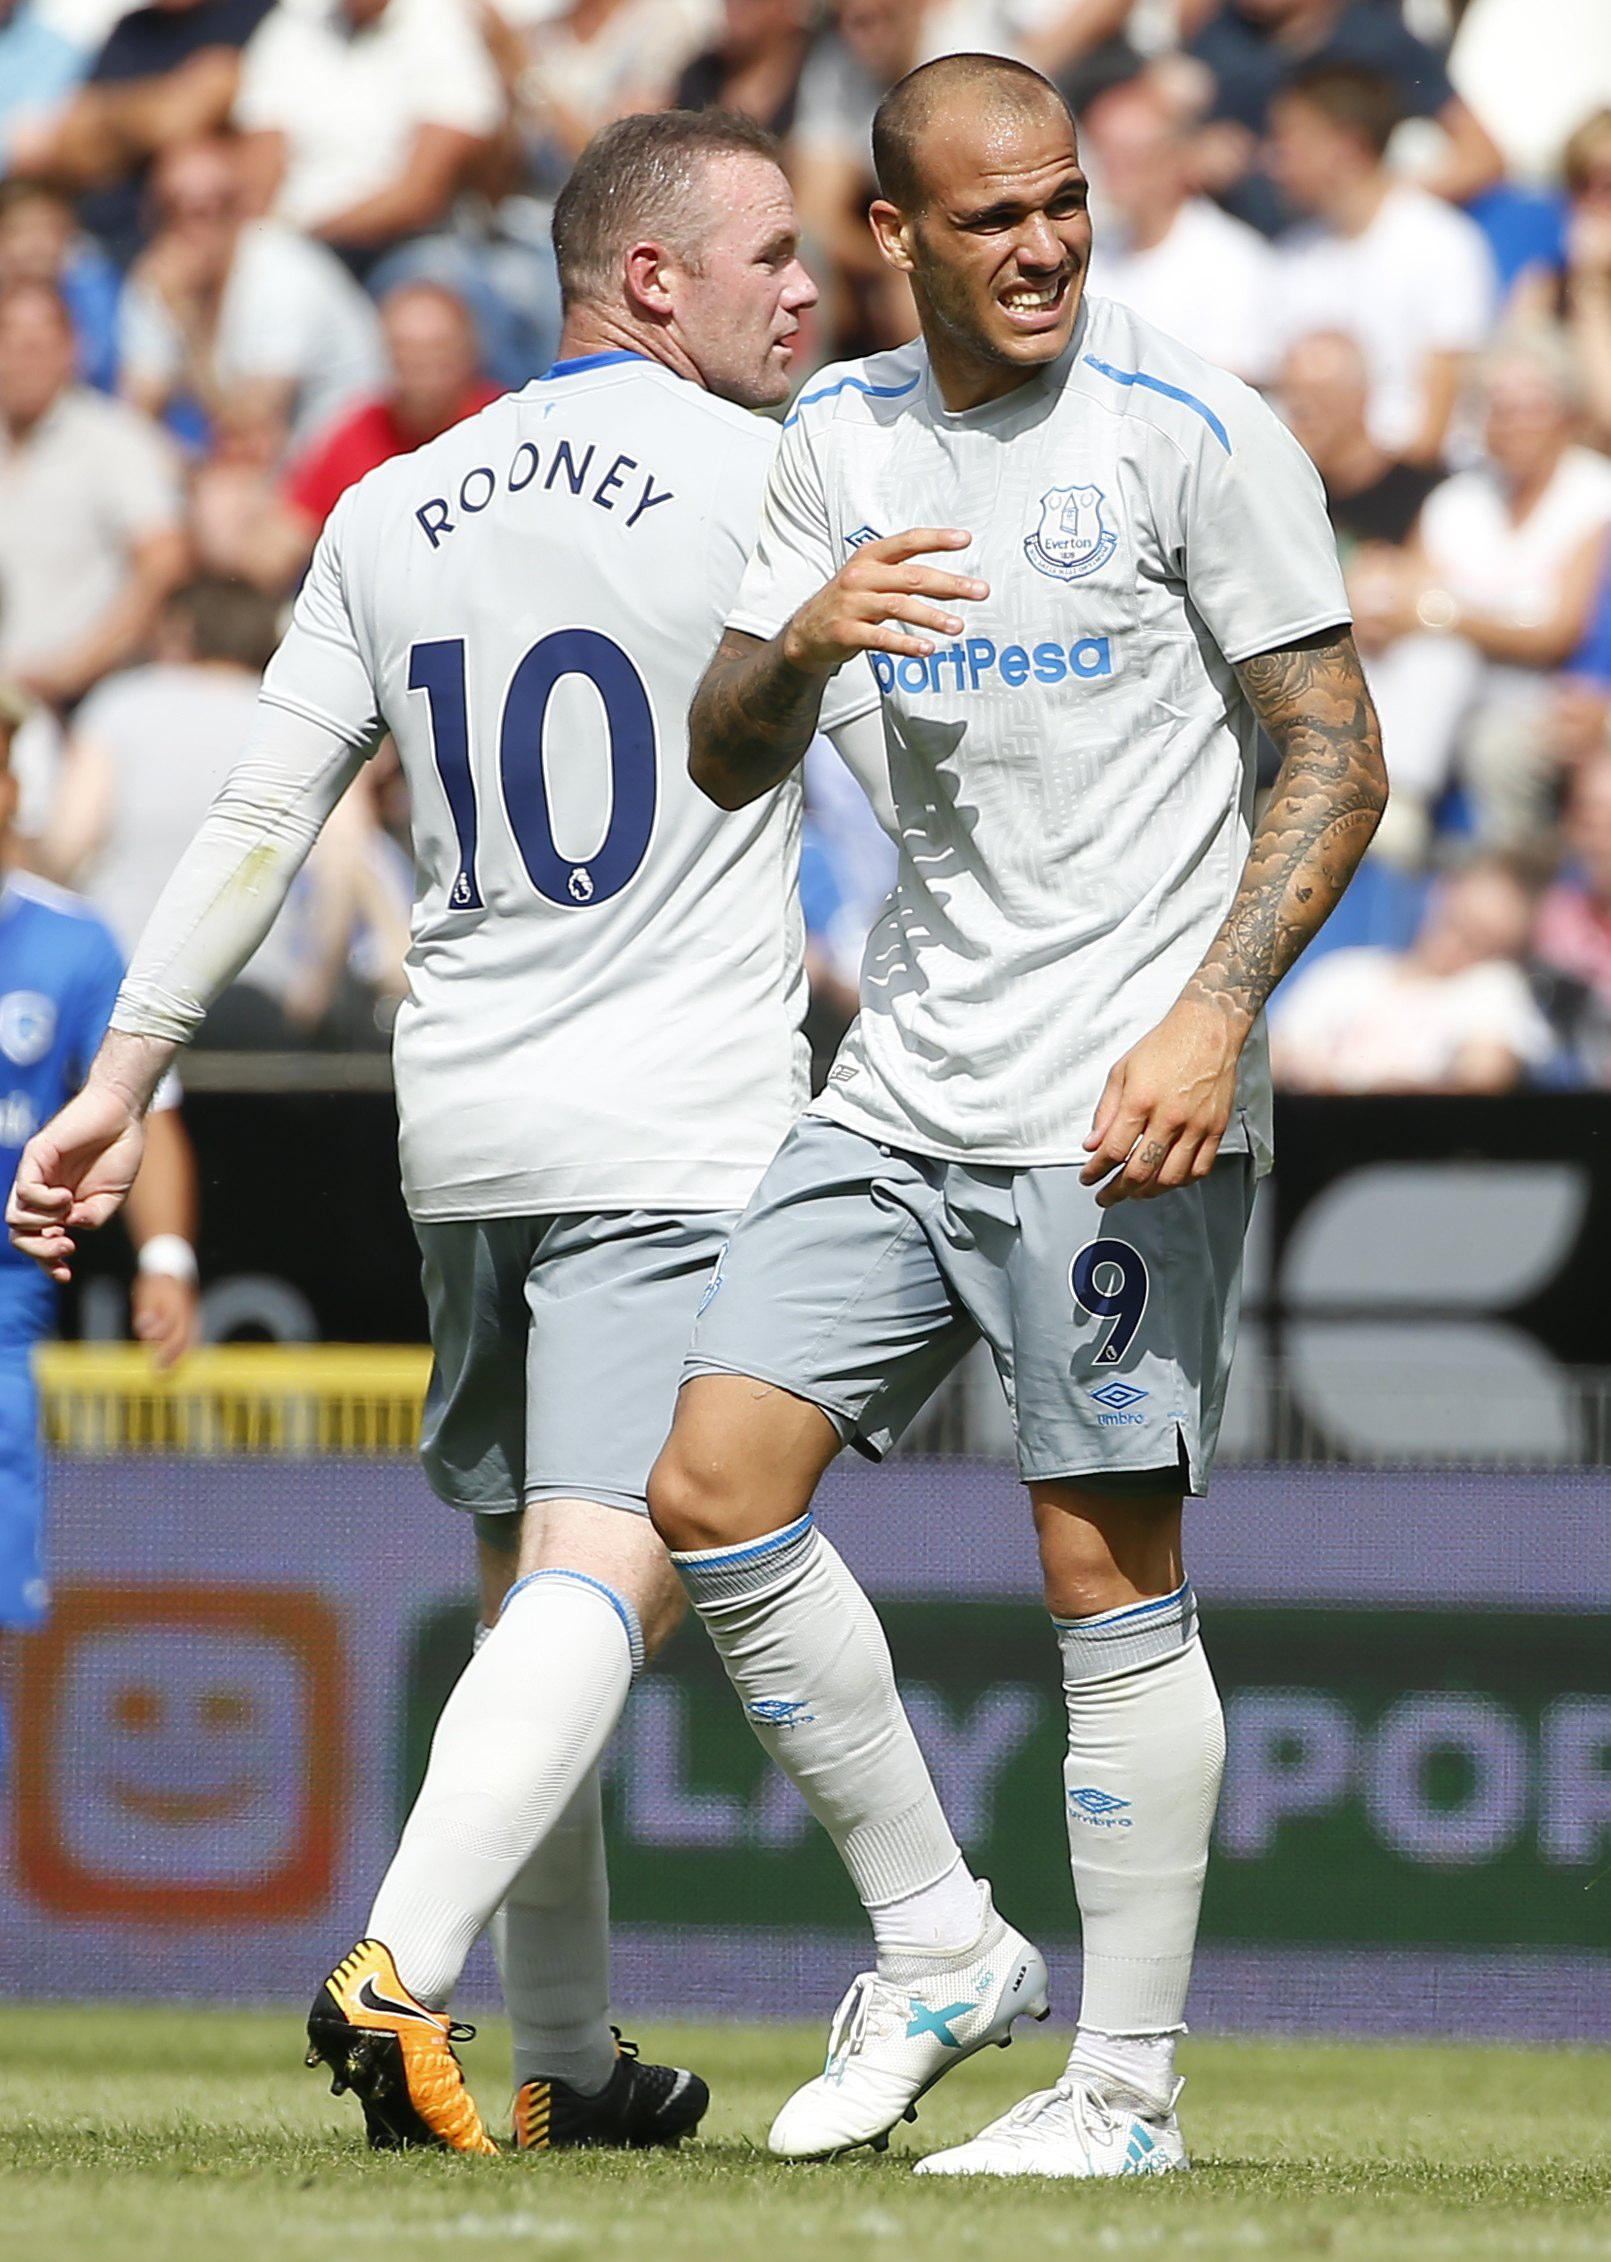 These two could form a decent partnership at Goodison